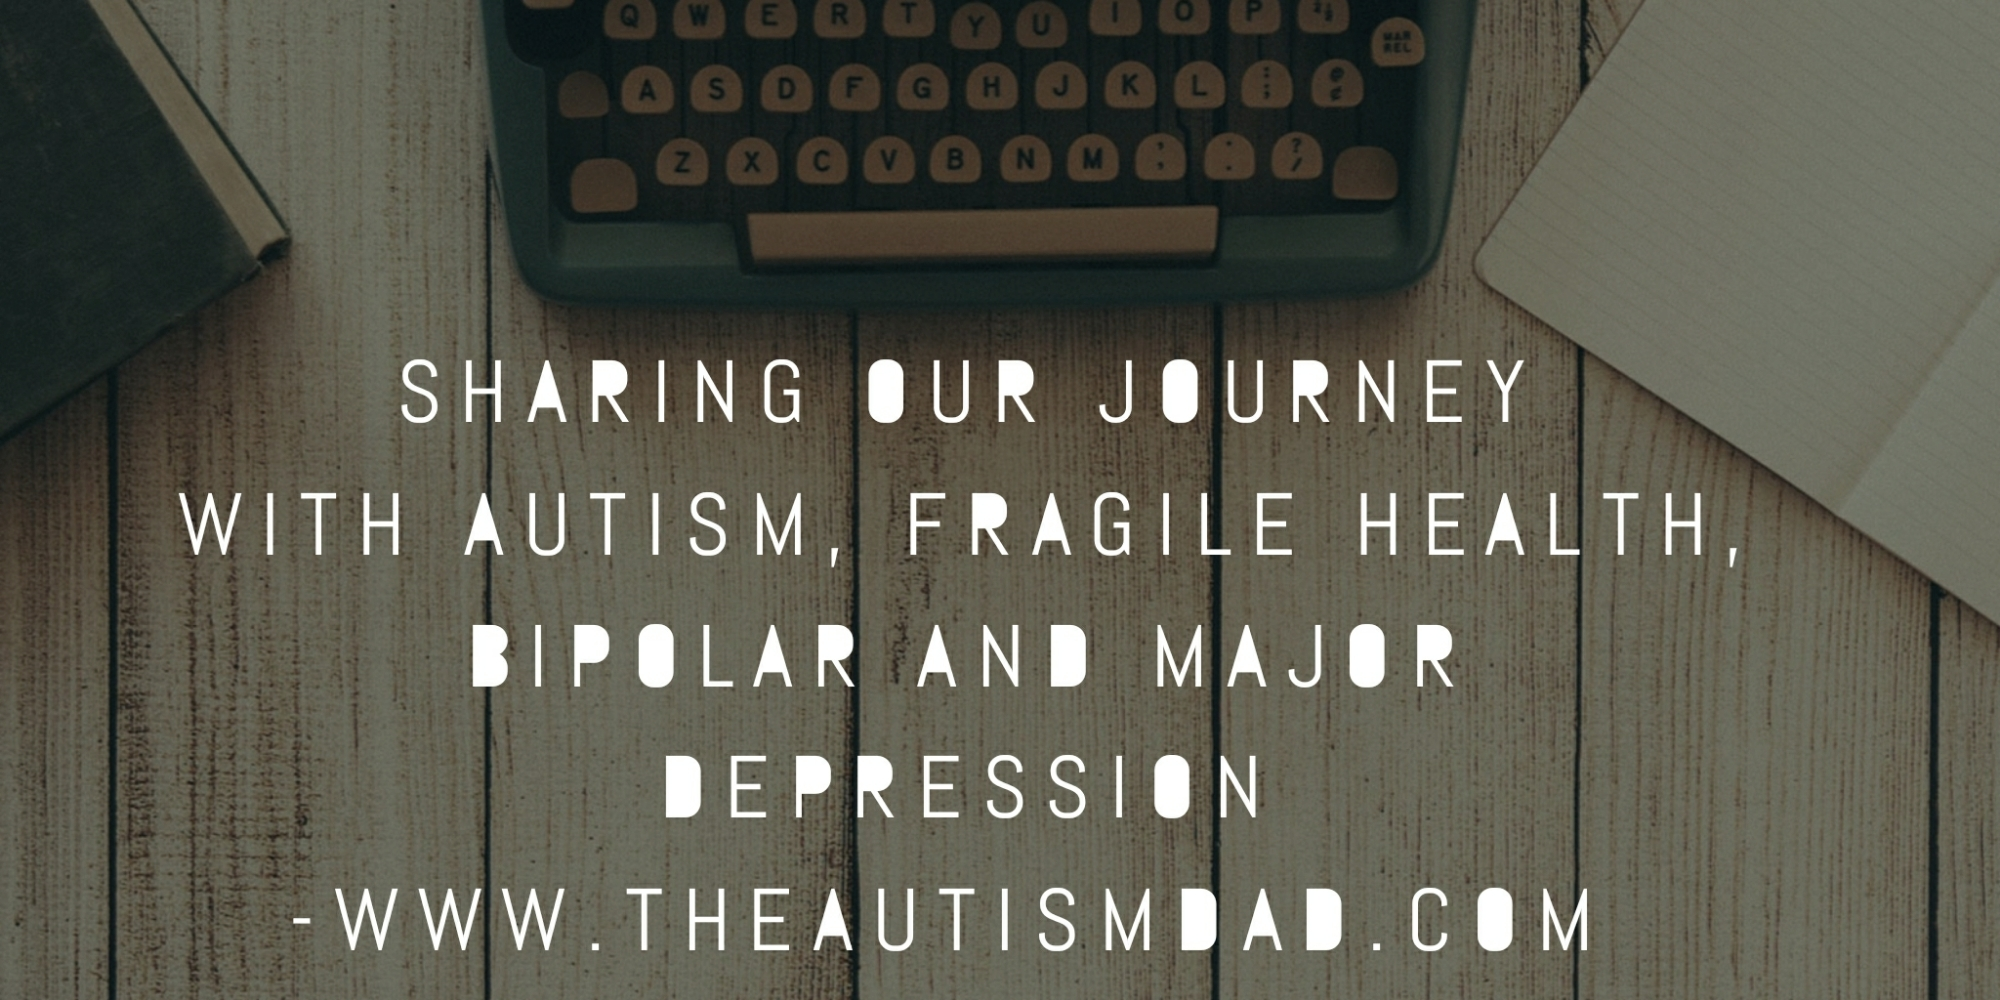 Sharing our journey with #Autism, Fragile health, #Bipolar and major #Depression